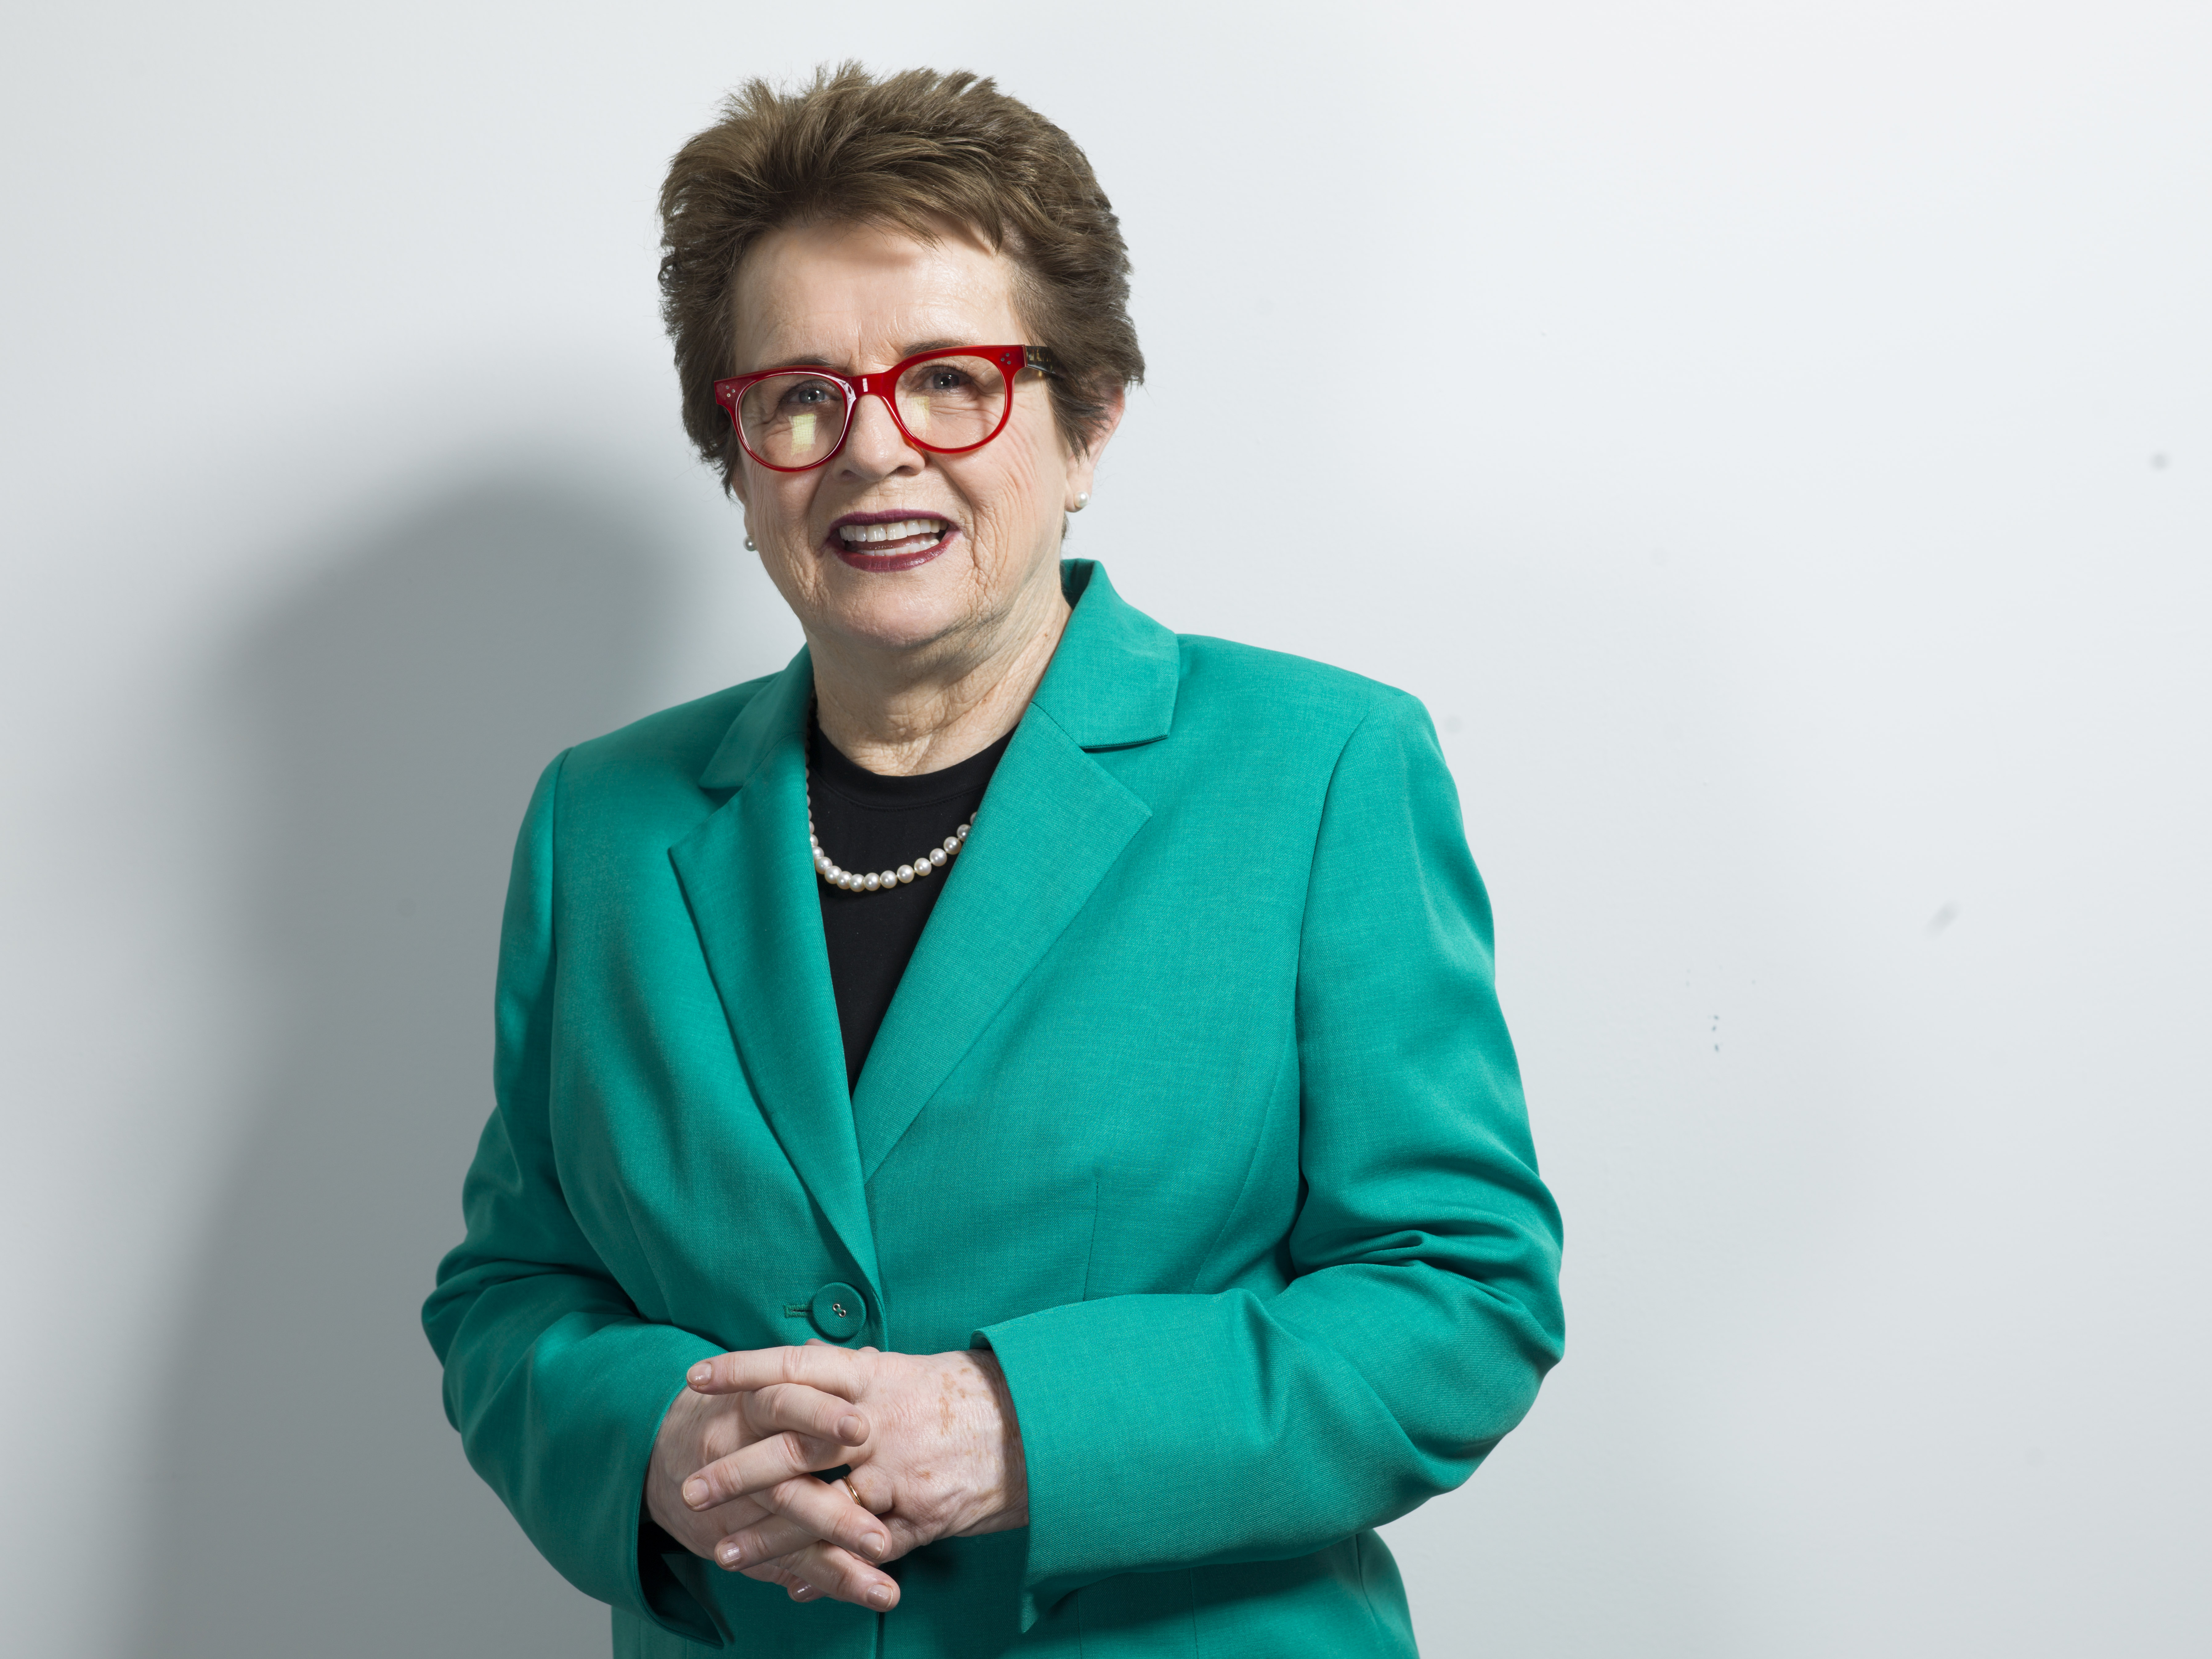 billie jean king - photo #46